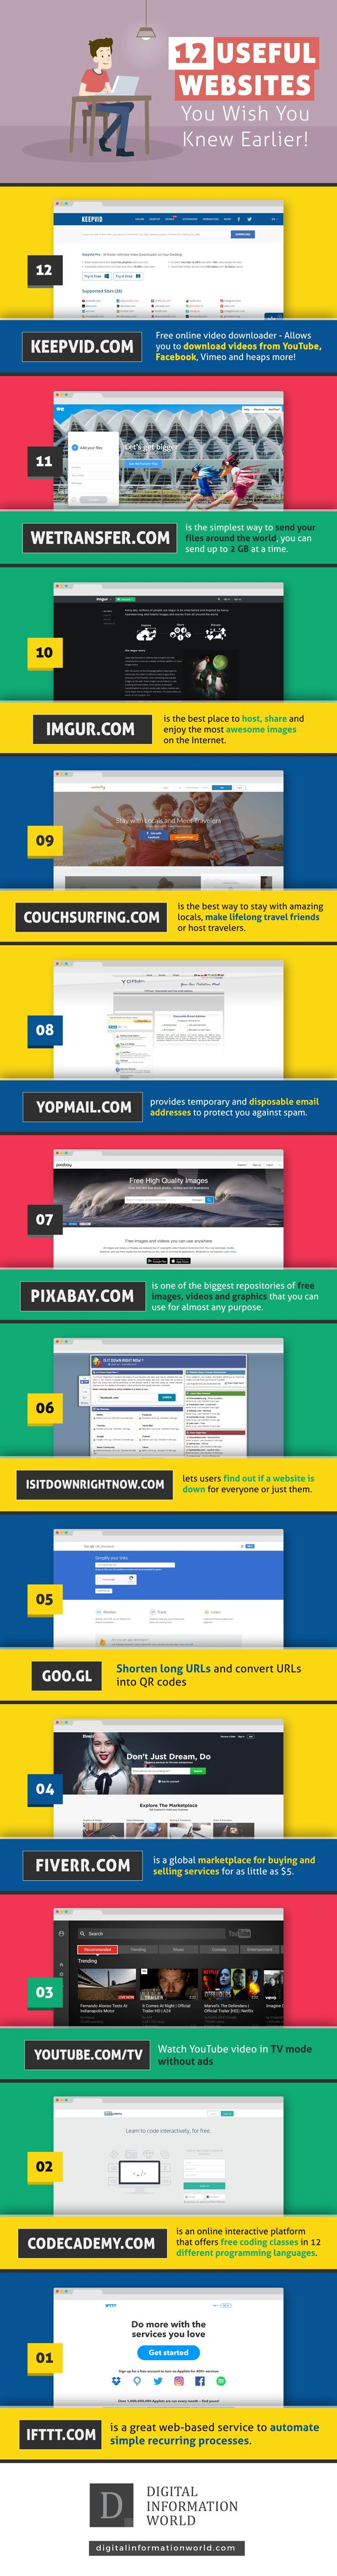 Here are 25 most useful web apps on the internet that you may not know about. Each website and tool mentioned here solve at least one problem really well and they all have memorable URLs that you can remember easily thus saving you a trip to Google